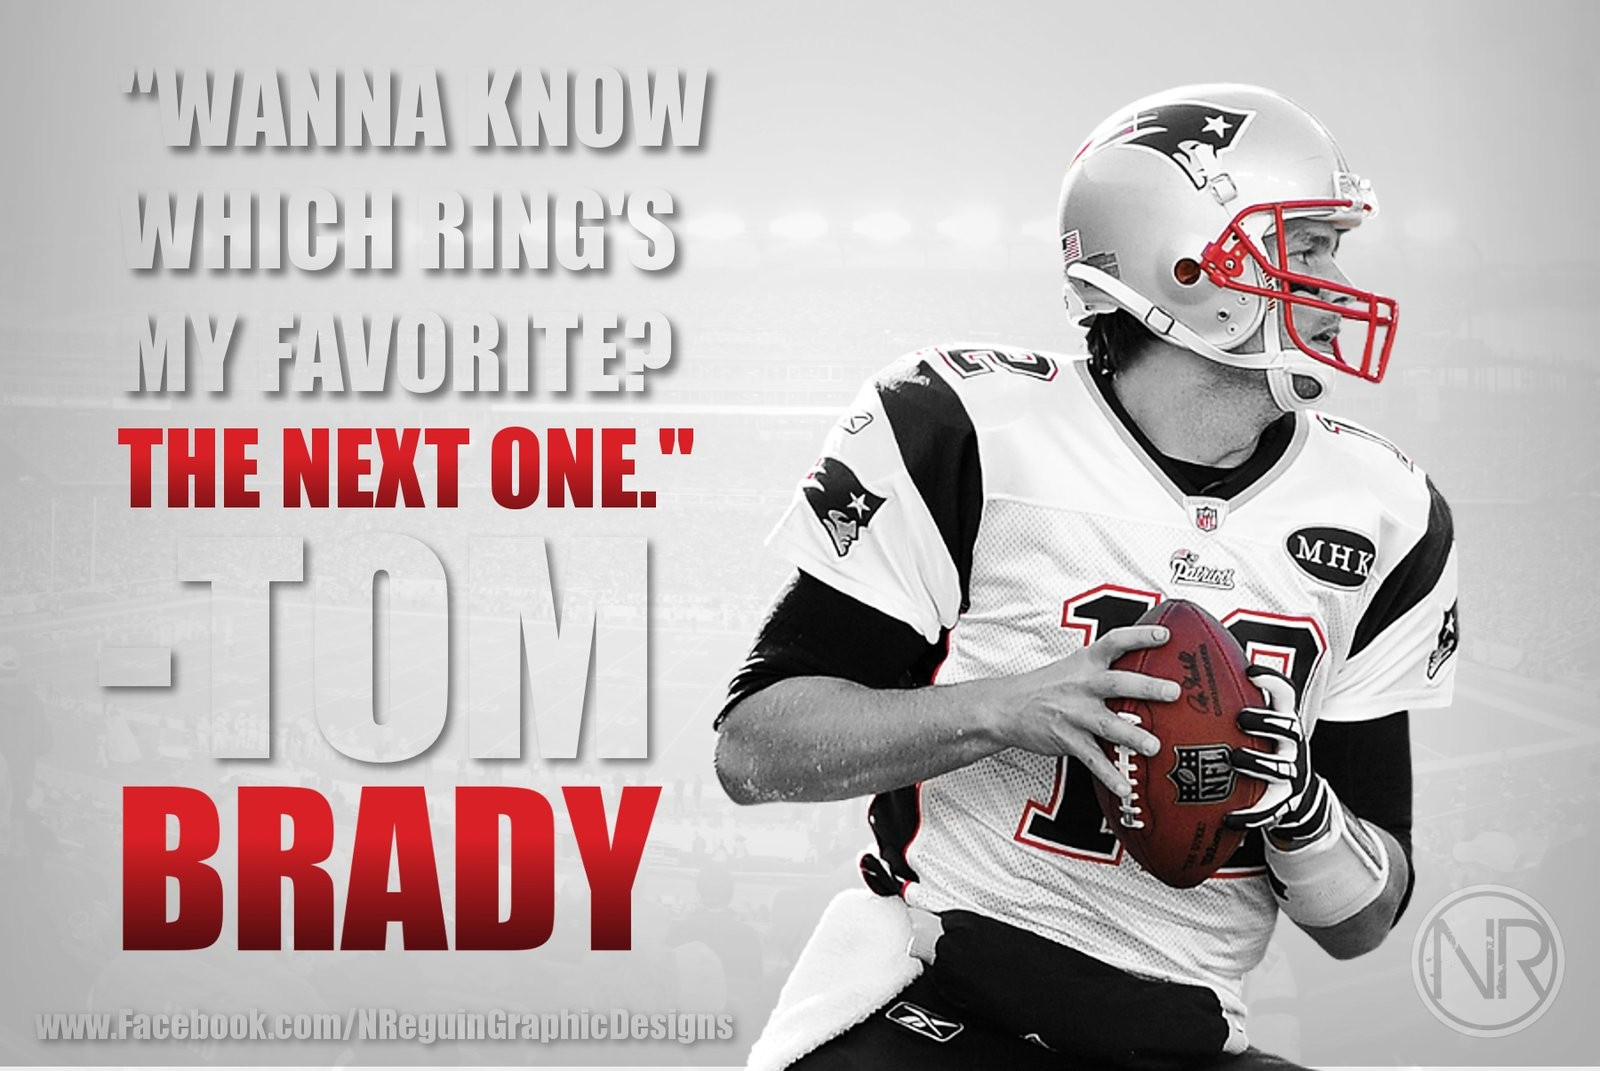 How many more years do you think Tom Brady will play in the NFL?